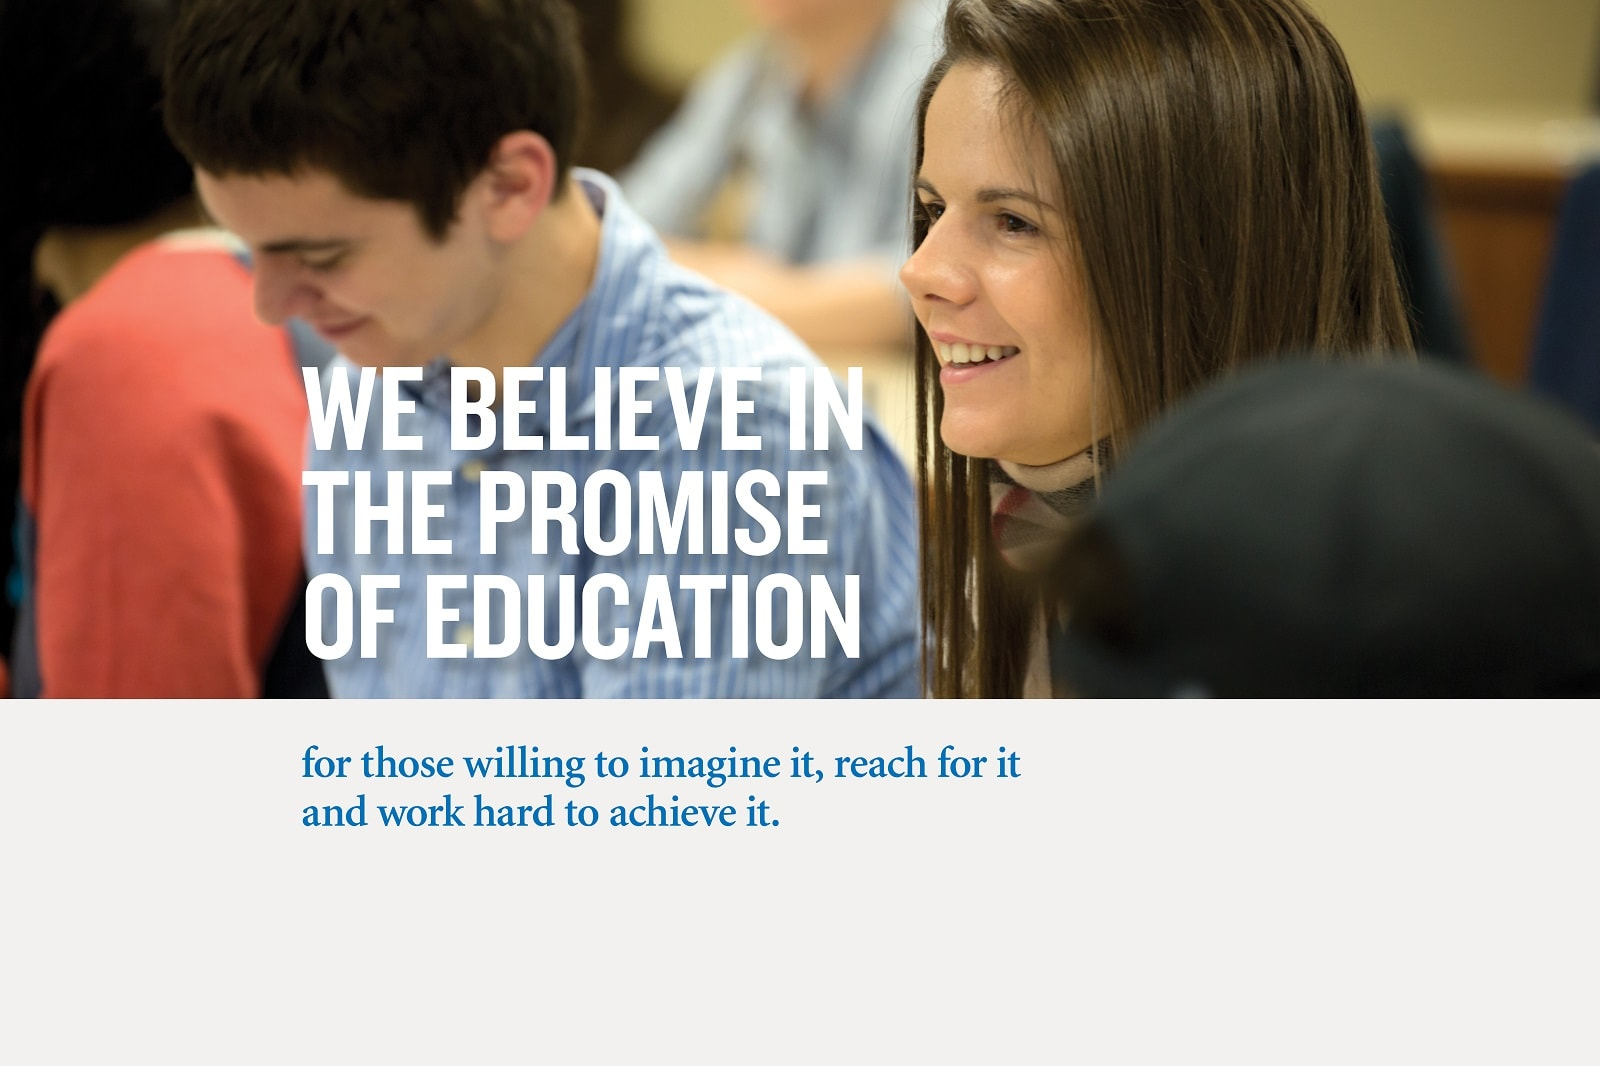 We believe in the promise of education.